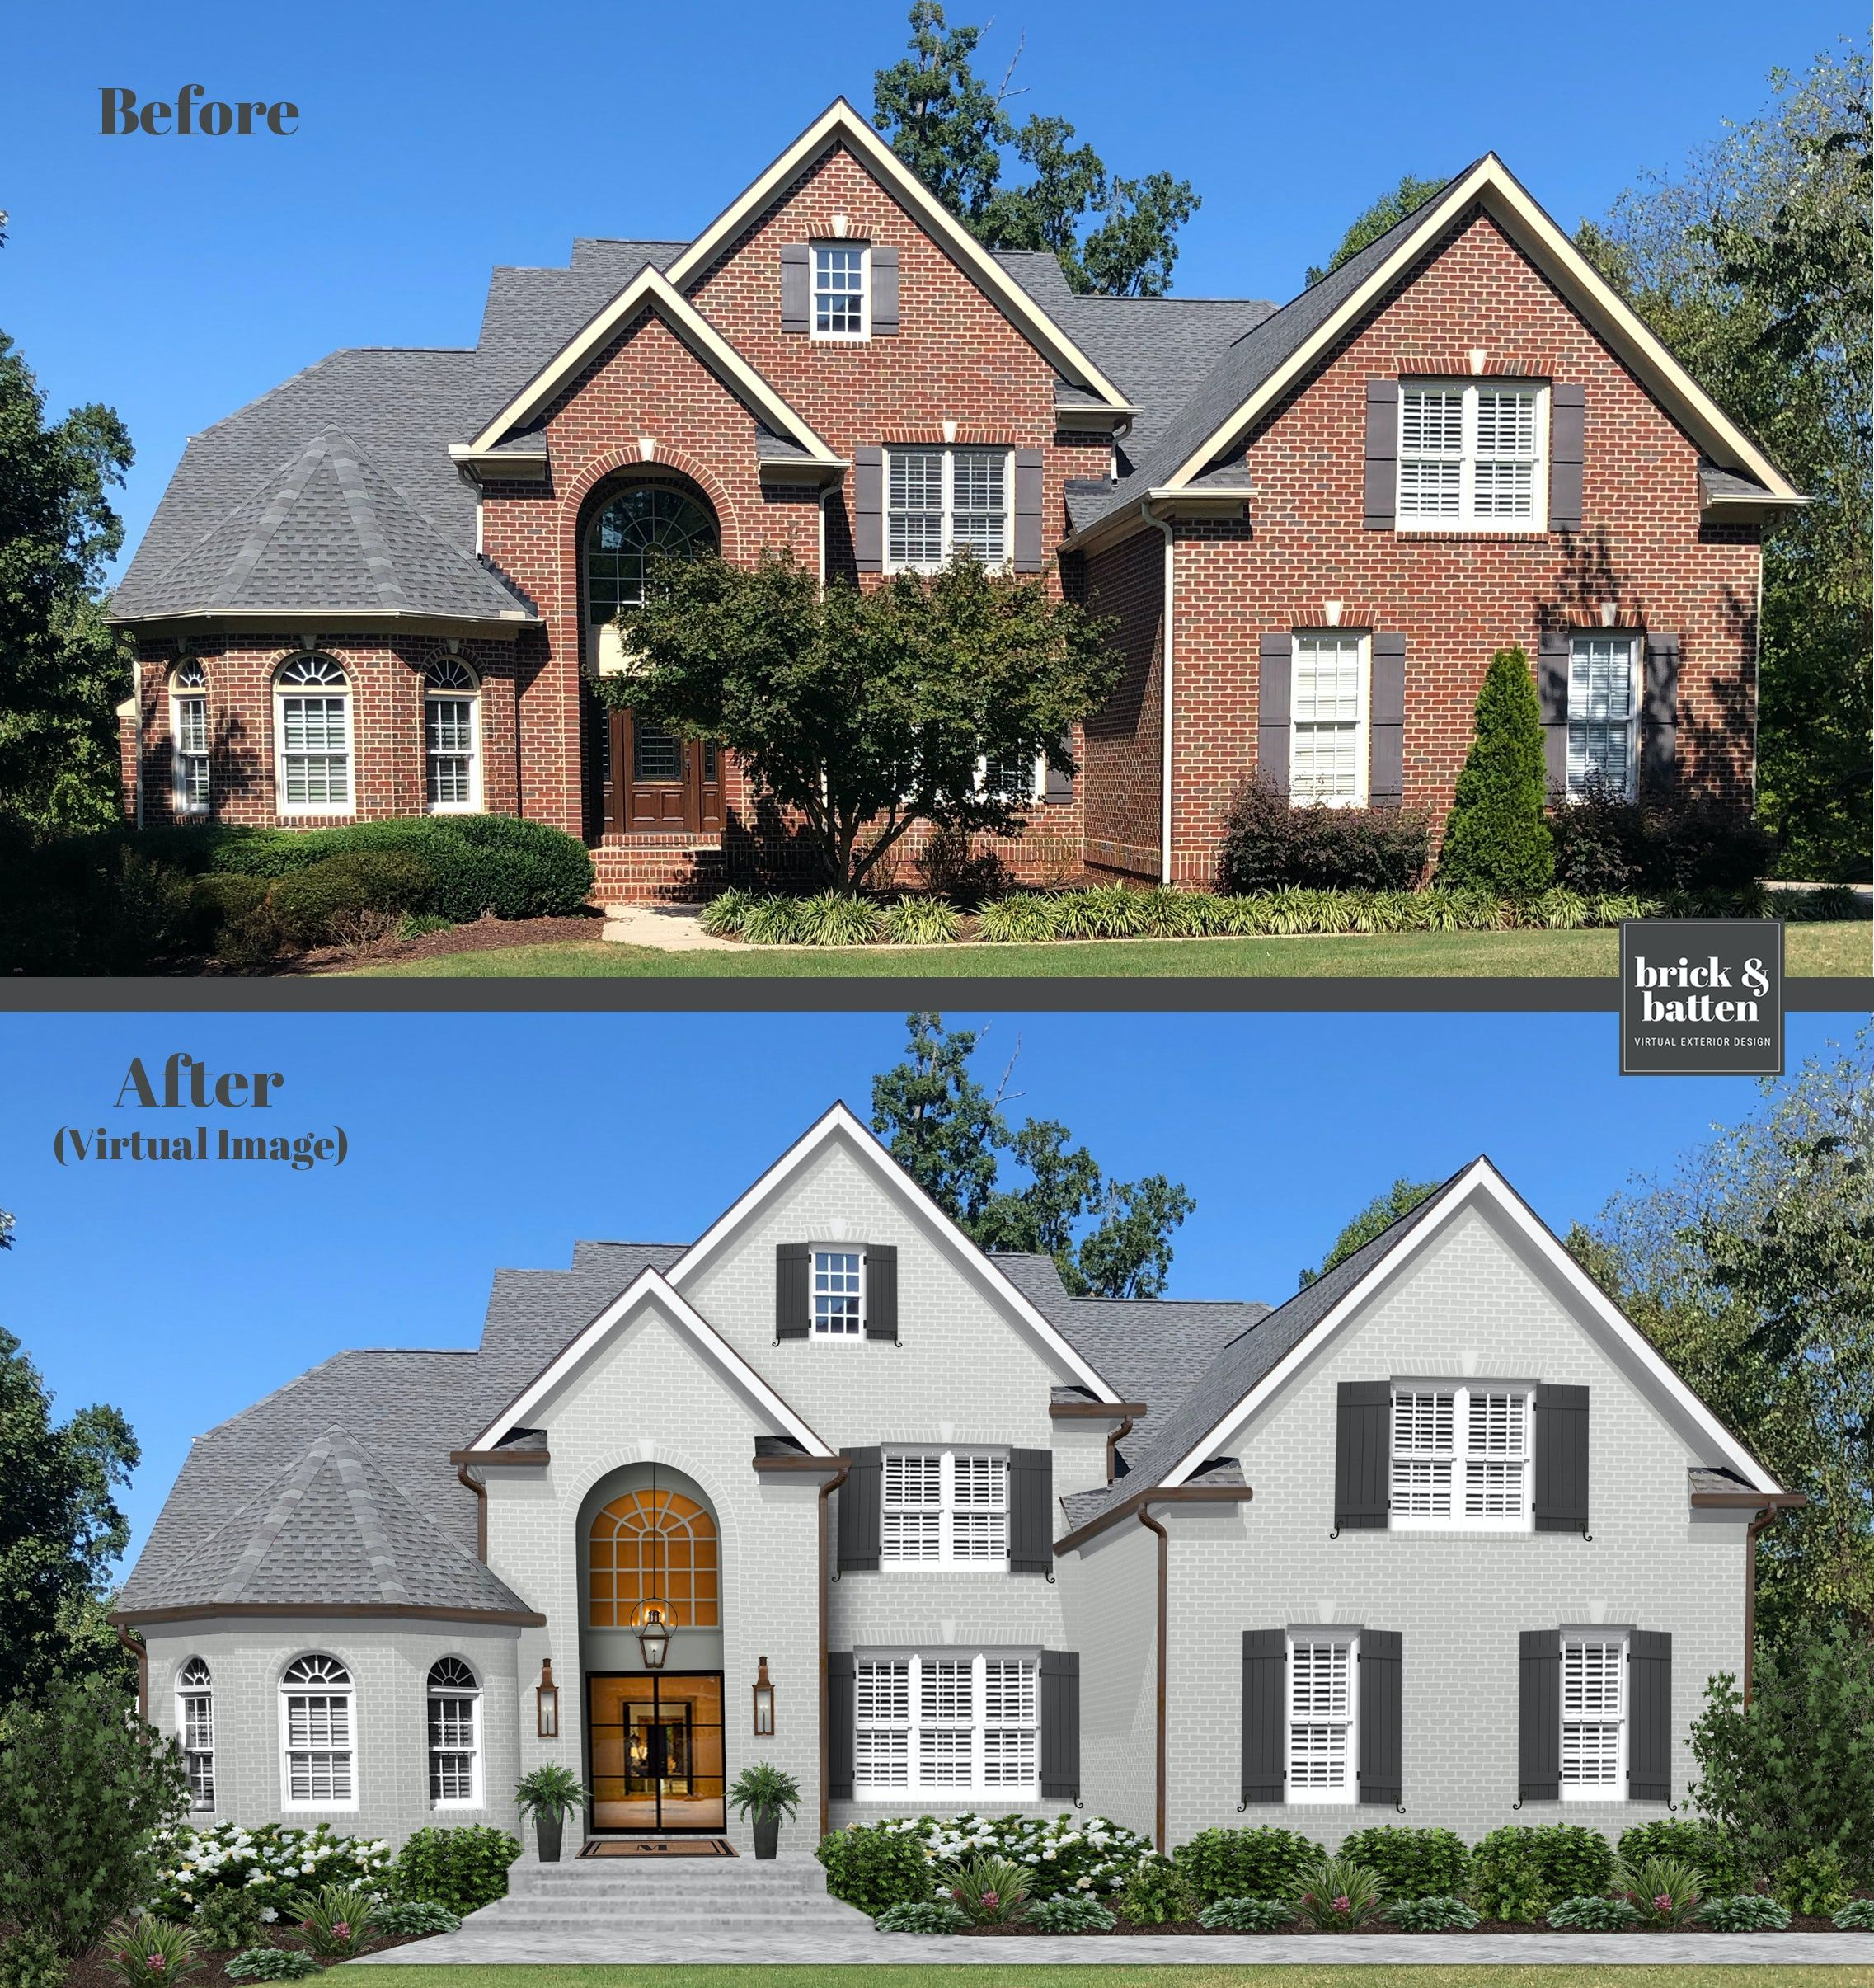 20 Painted Brick Houses To Inspire You In 2020 Blog Brick Batten In 2020 Painted Brick House Brick Exterior House Painted Brick Exteriors